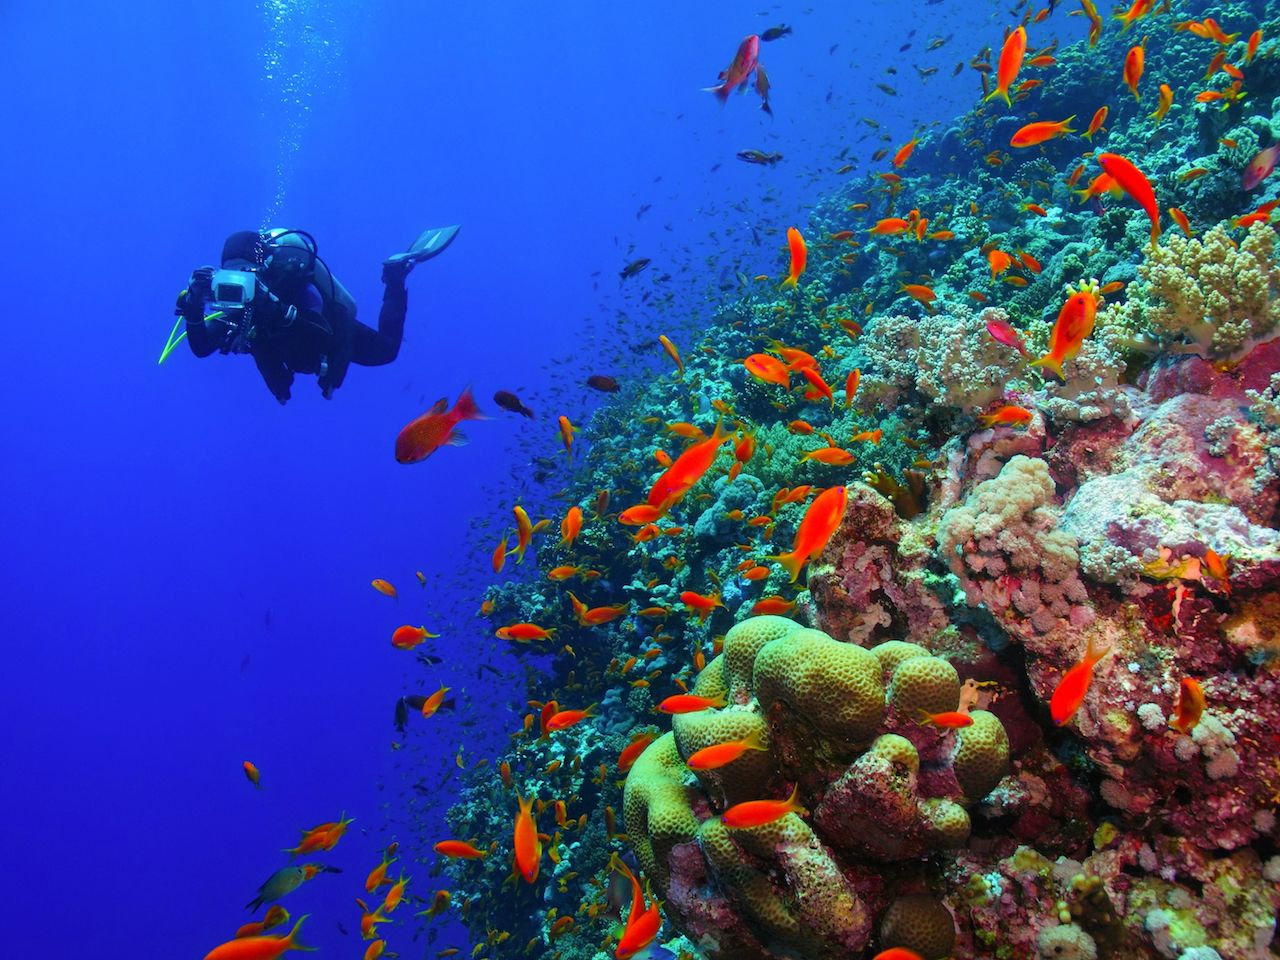 Scuba diver photographer swimming in the blue ocean with colorful coral reef